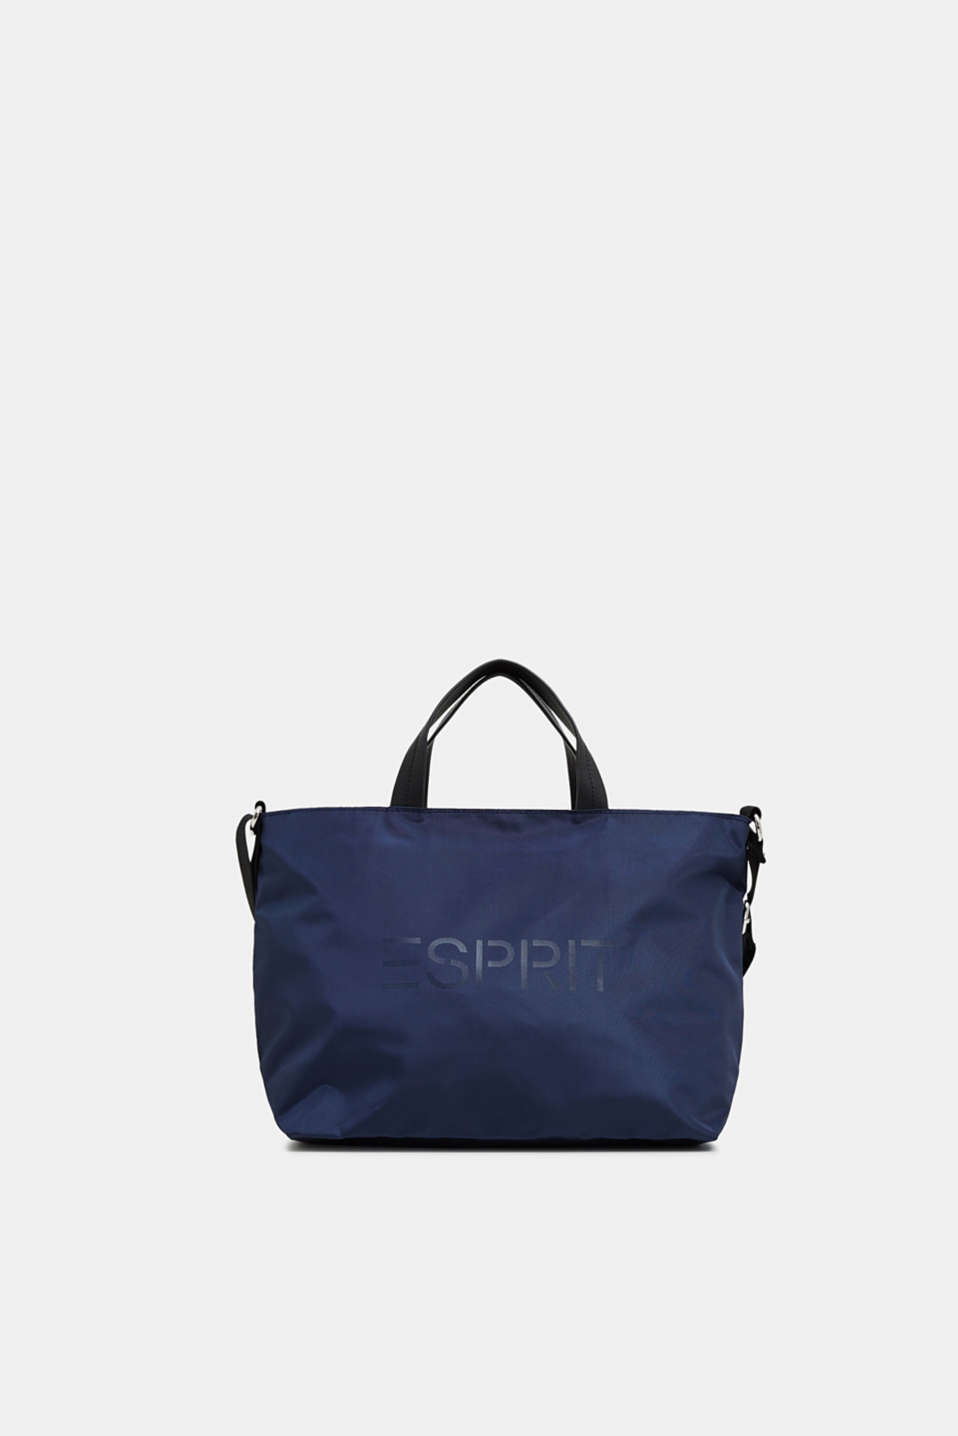 Esprit - City bag met logo, van gestructureerd nylon